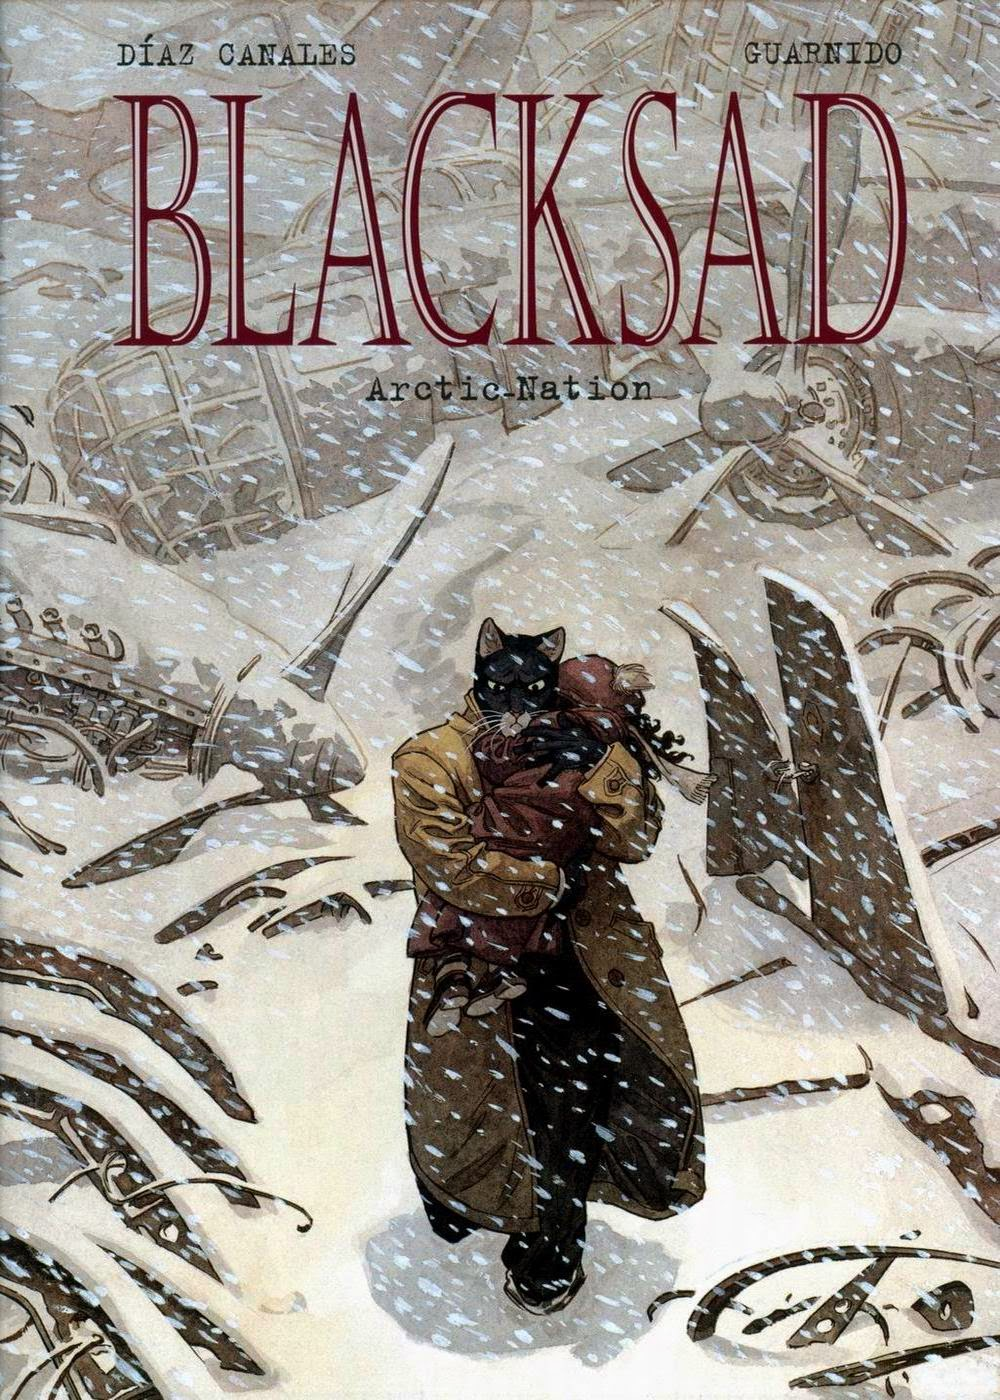 300 blacksad artic nation cover